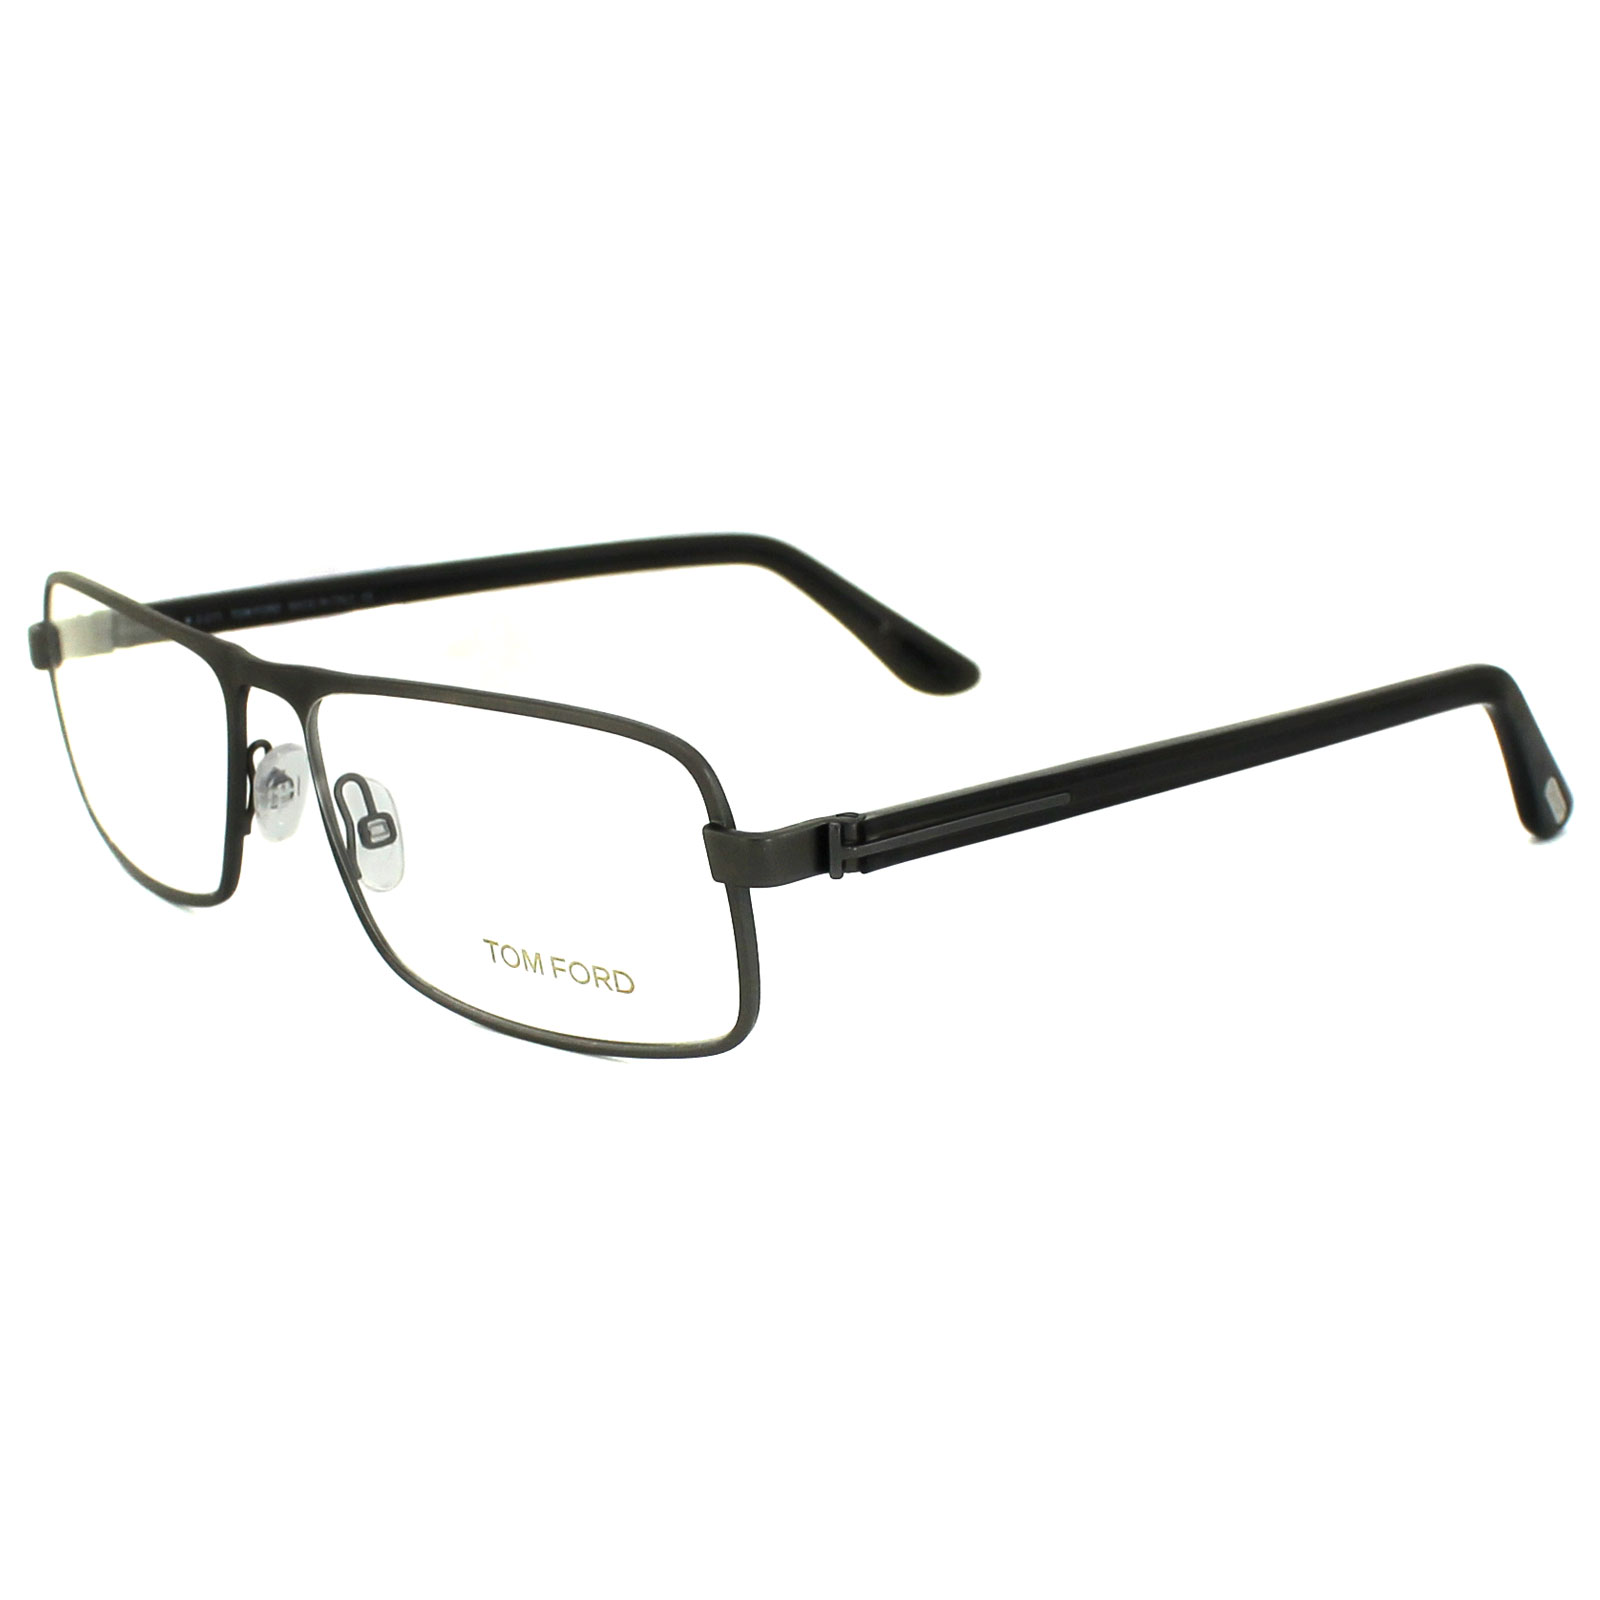 Glasses Frame Tom Ford : Cheap Tom Ford 5201 Glasses Frames - Discounted Sunglasses